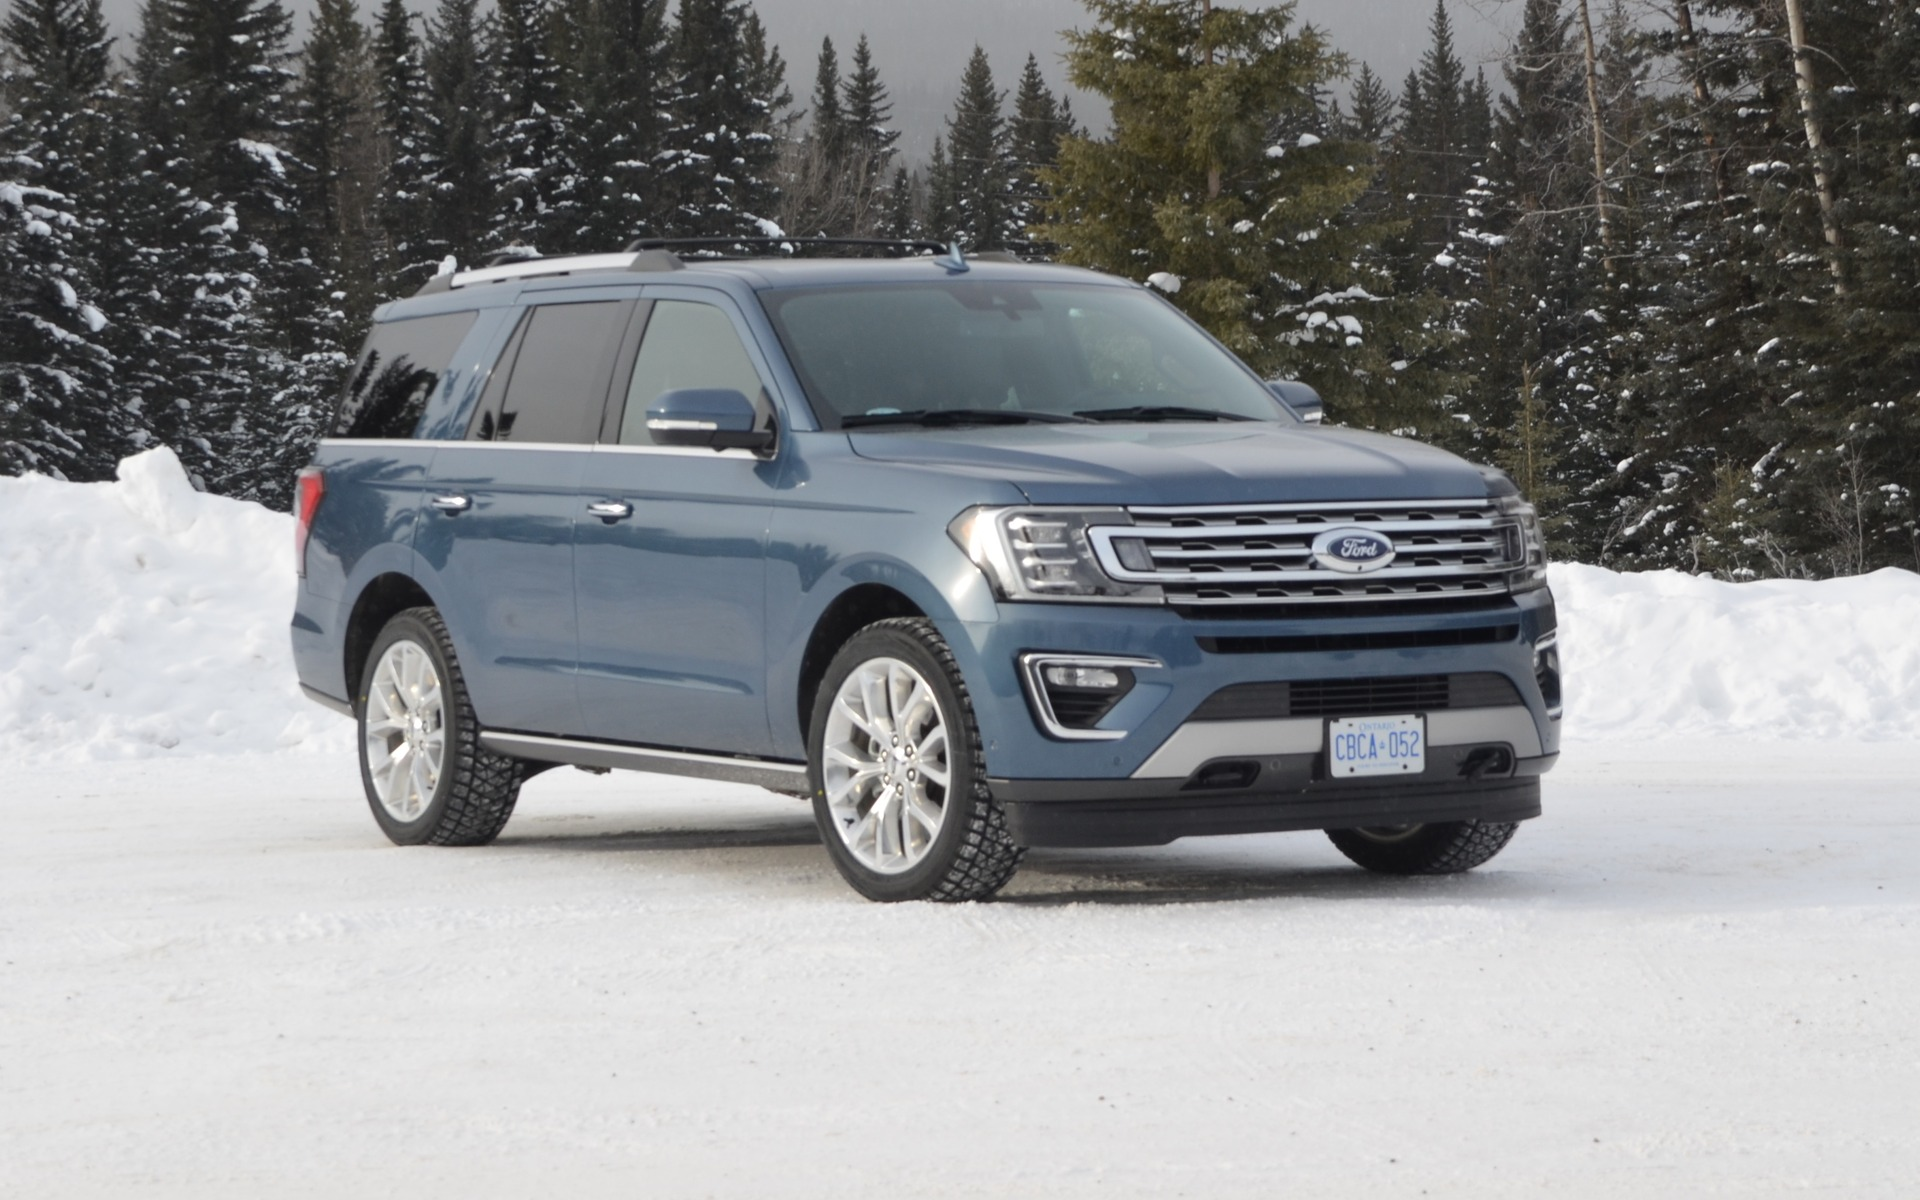 Dodge Durango Towing Capacity >> 2018 Ford Expedition: Why Pay More for a Lincoln Navigator? - The Car Guide